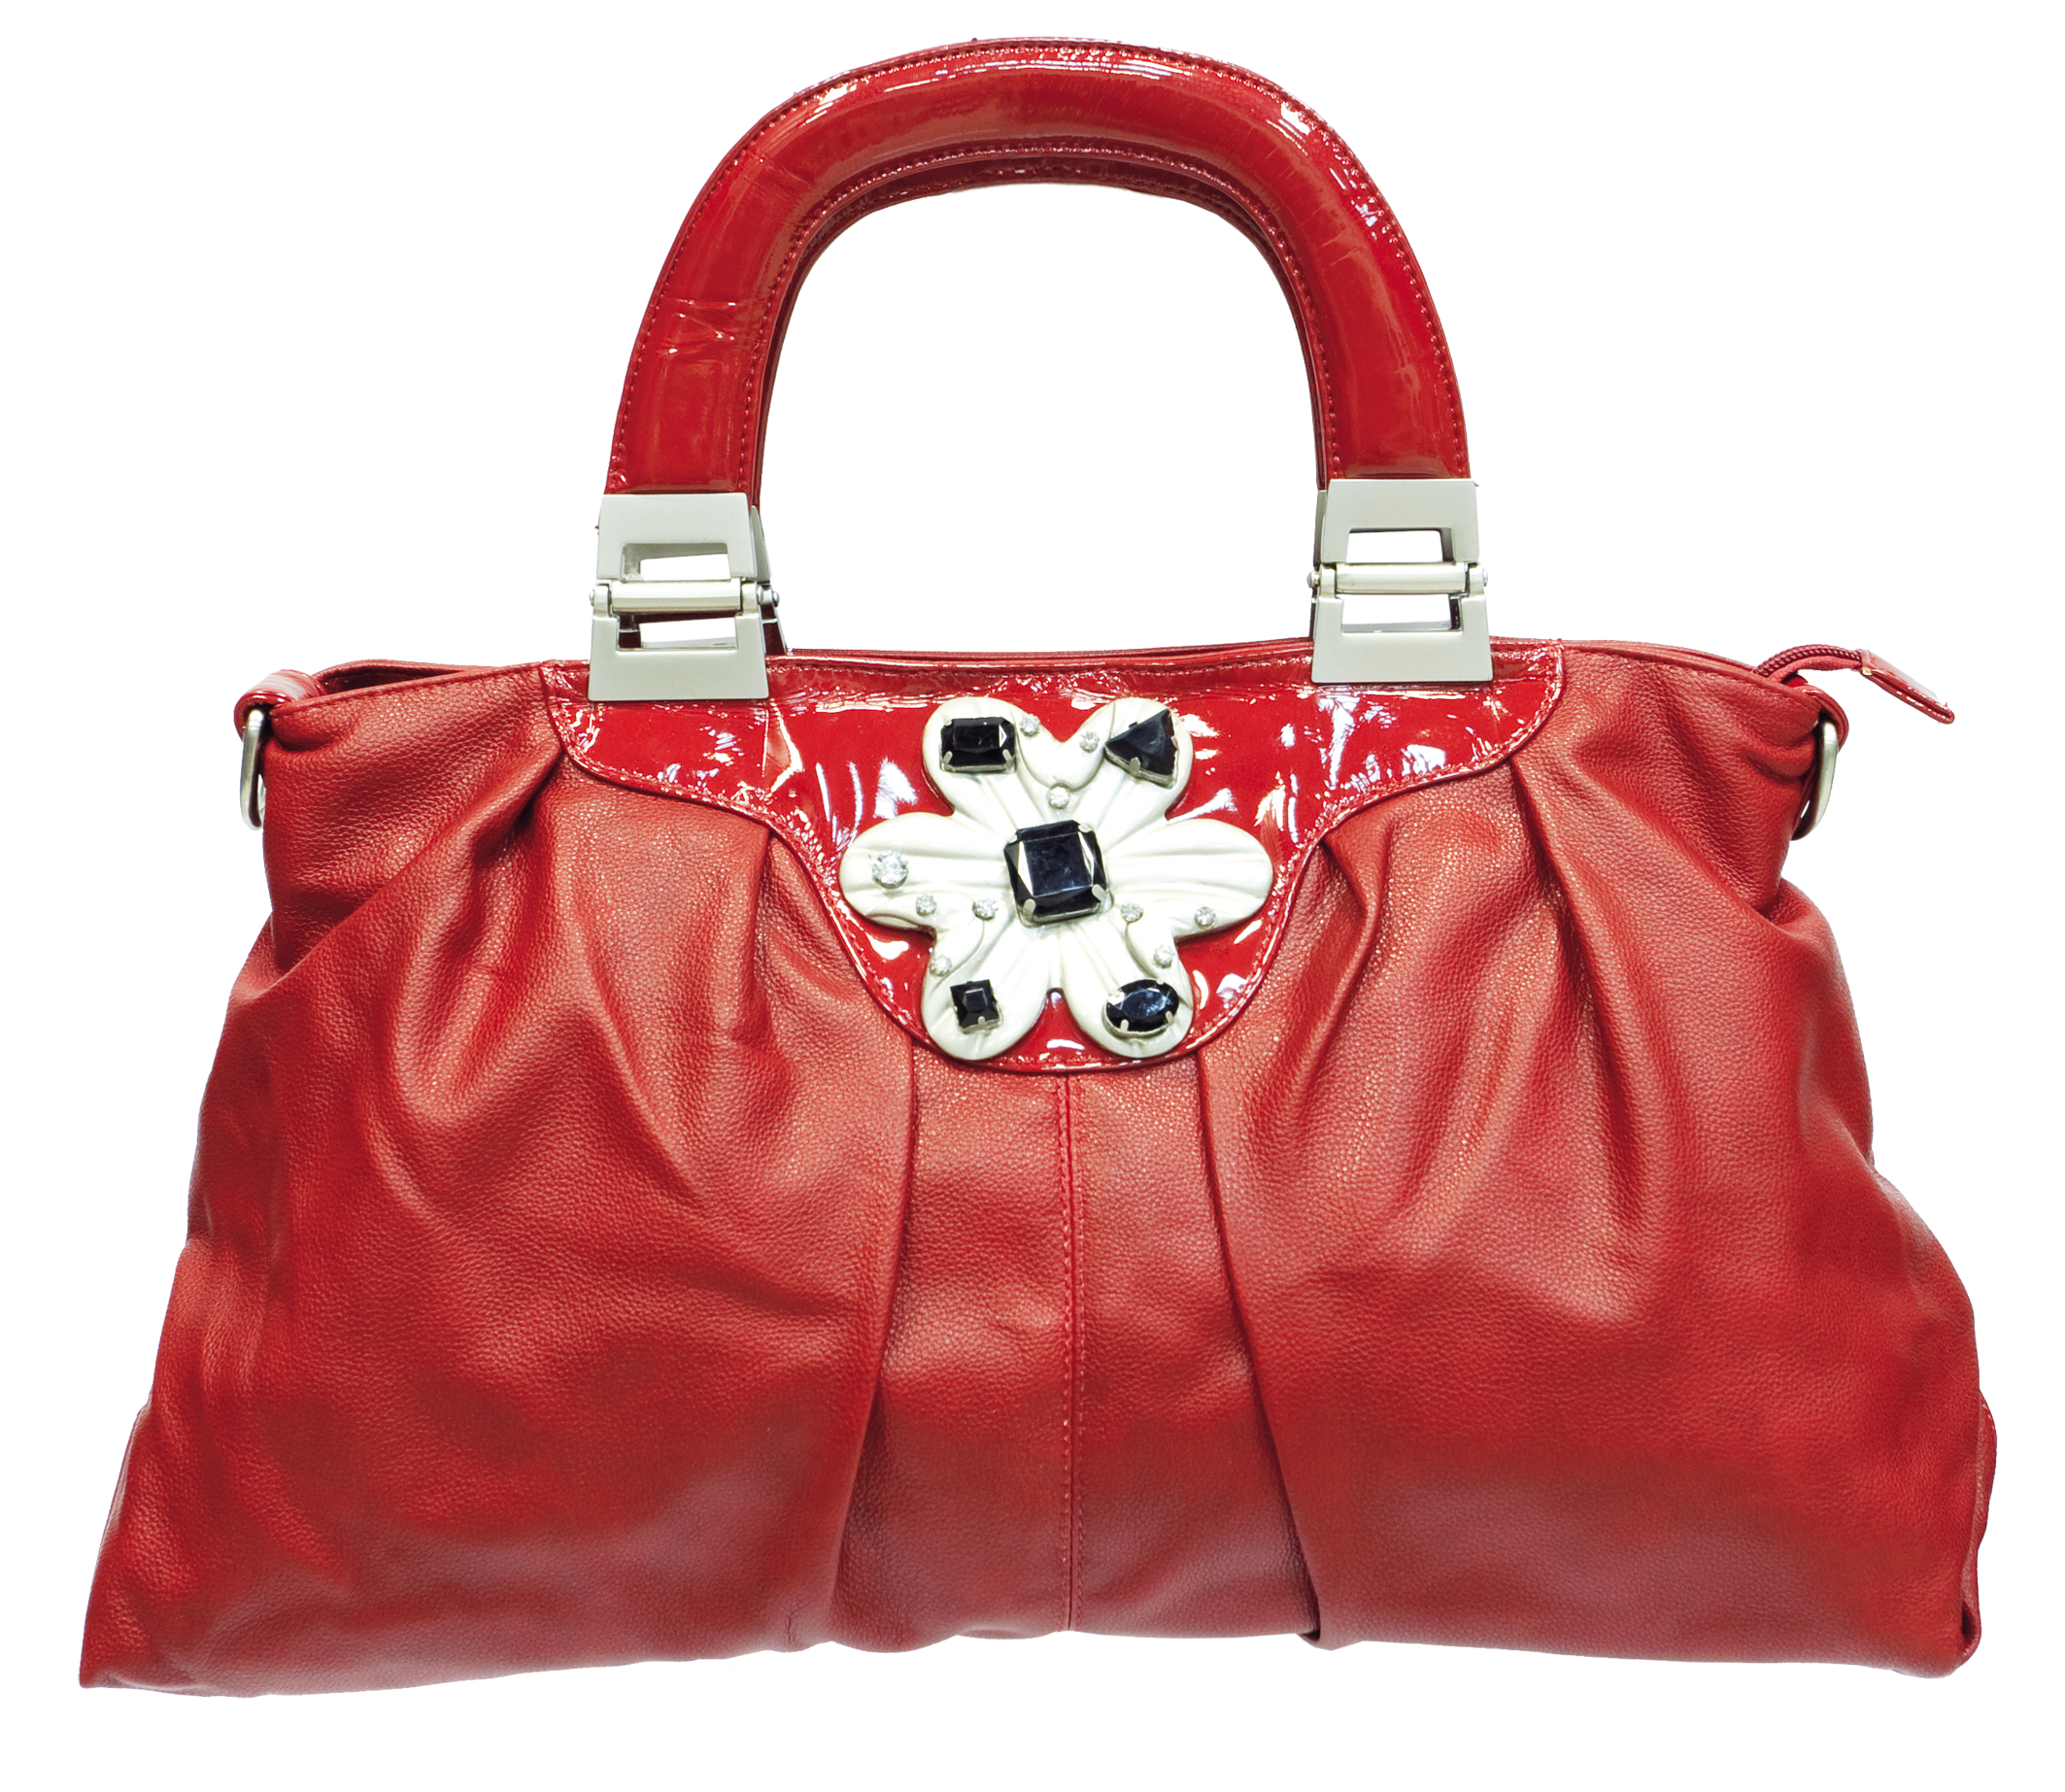 Red Women Bag PNG Image.